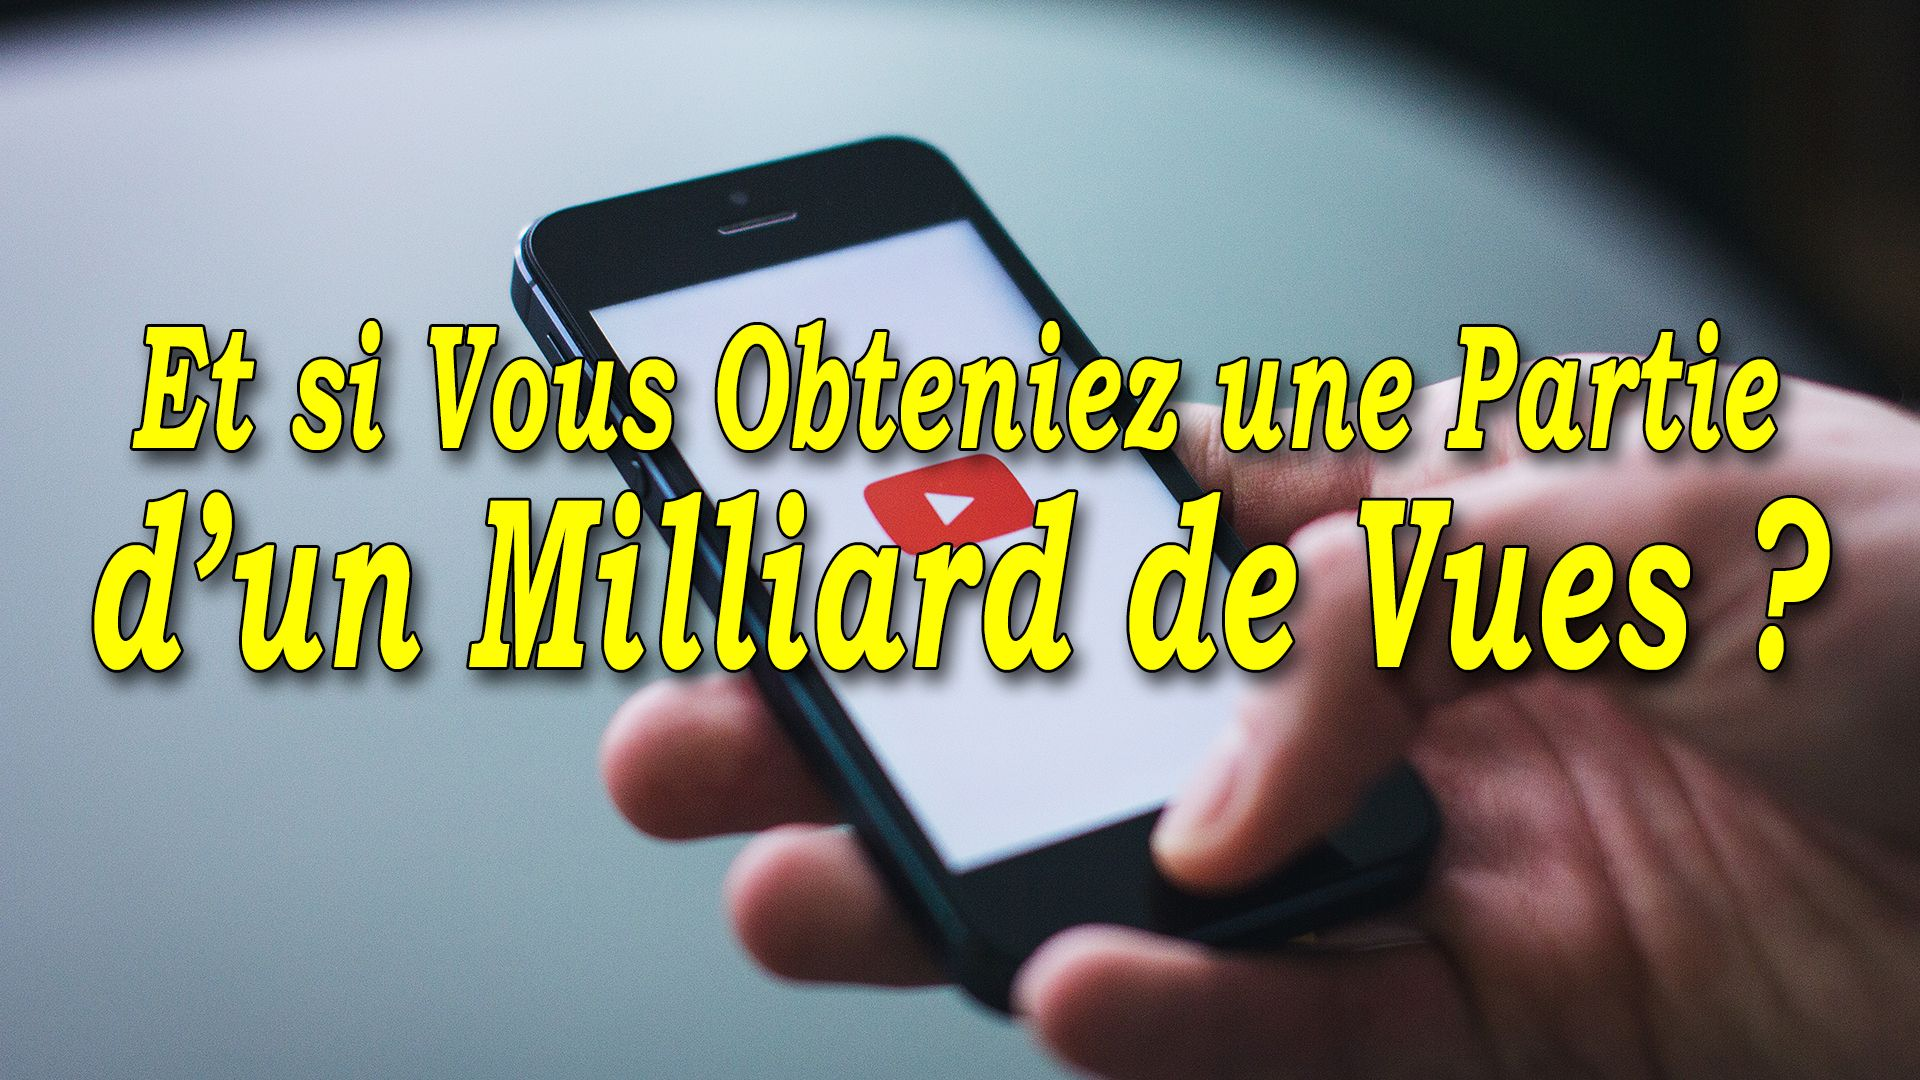 Et si vous obteniez une partie d'un milliard de vues ? #GrowthHacking #WebMarketing #FormationGrowthHacking #CentreDeFormationFrance #TunnelAARRR #AARRR #SocialMedia #CommunityManagement #SEO #YouTube #YouTubeSEO